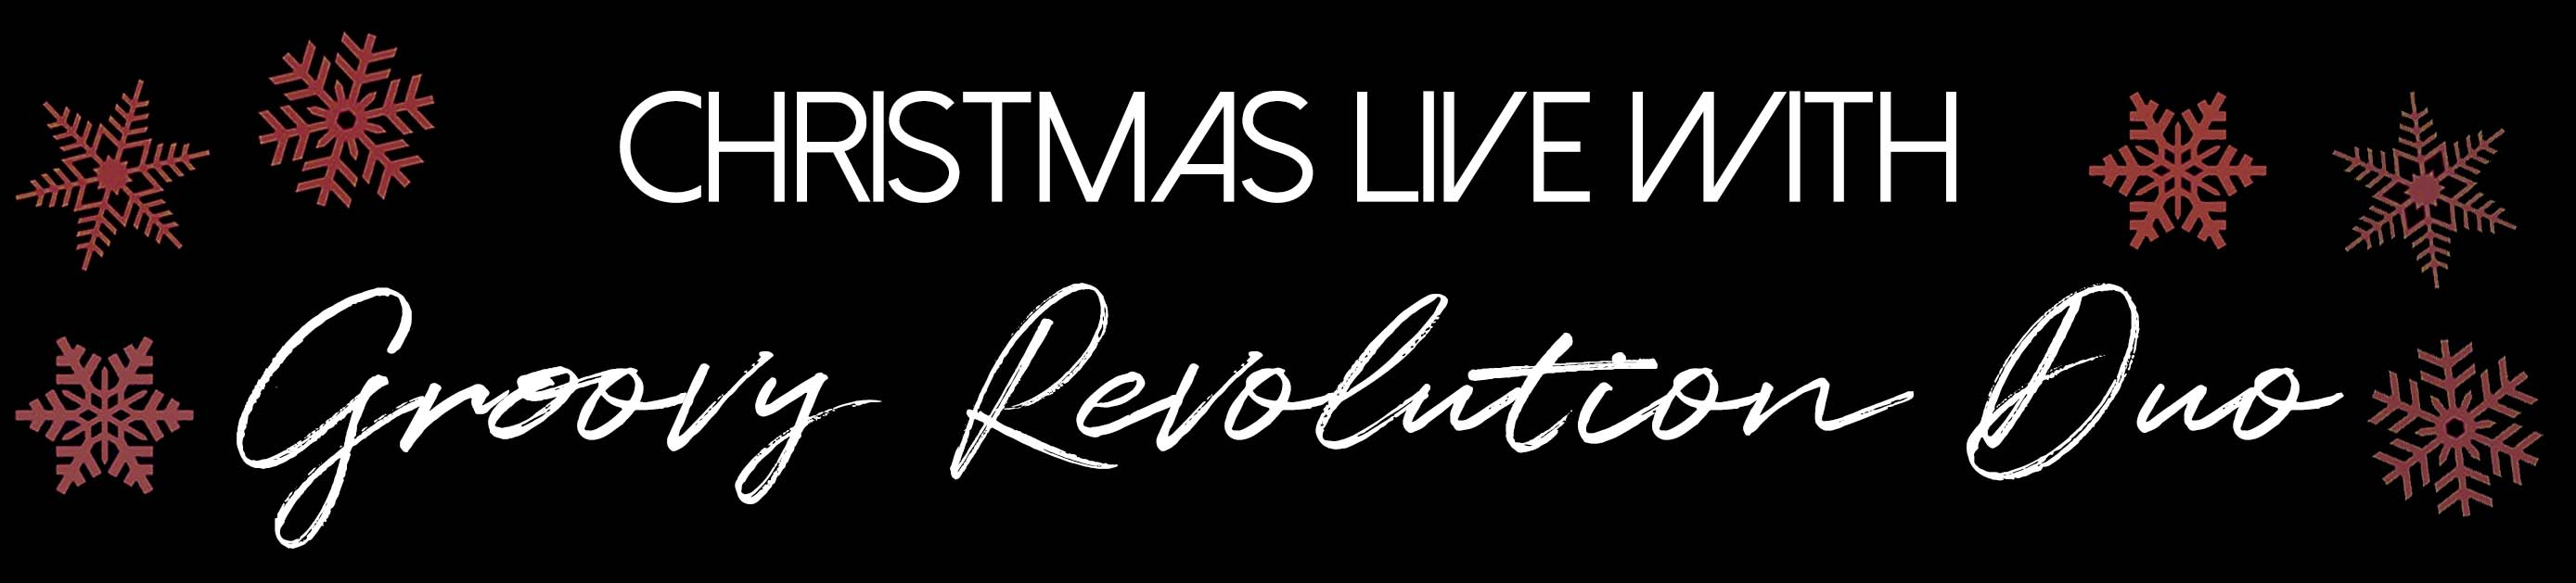 Christmas Live with Groovy Revolution Duo